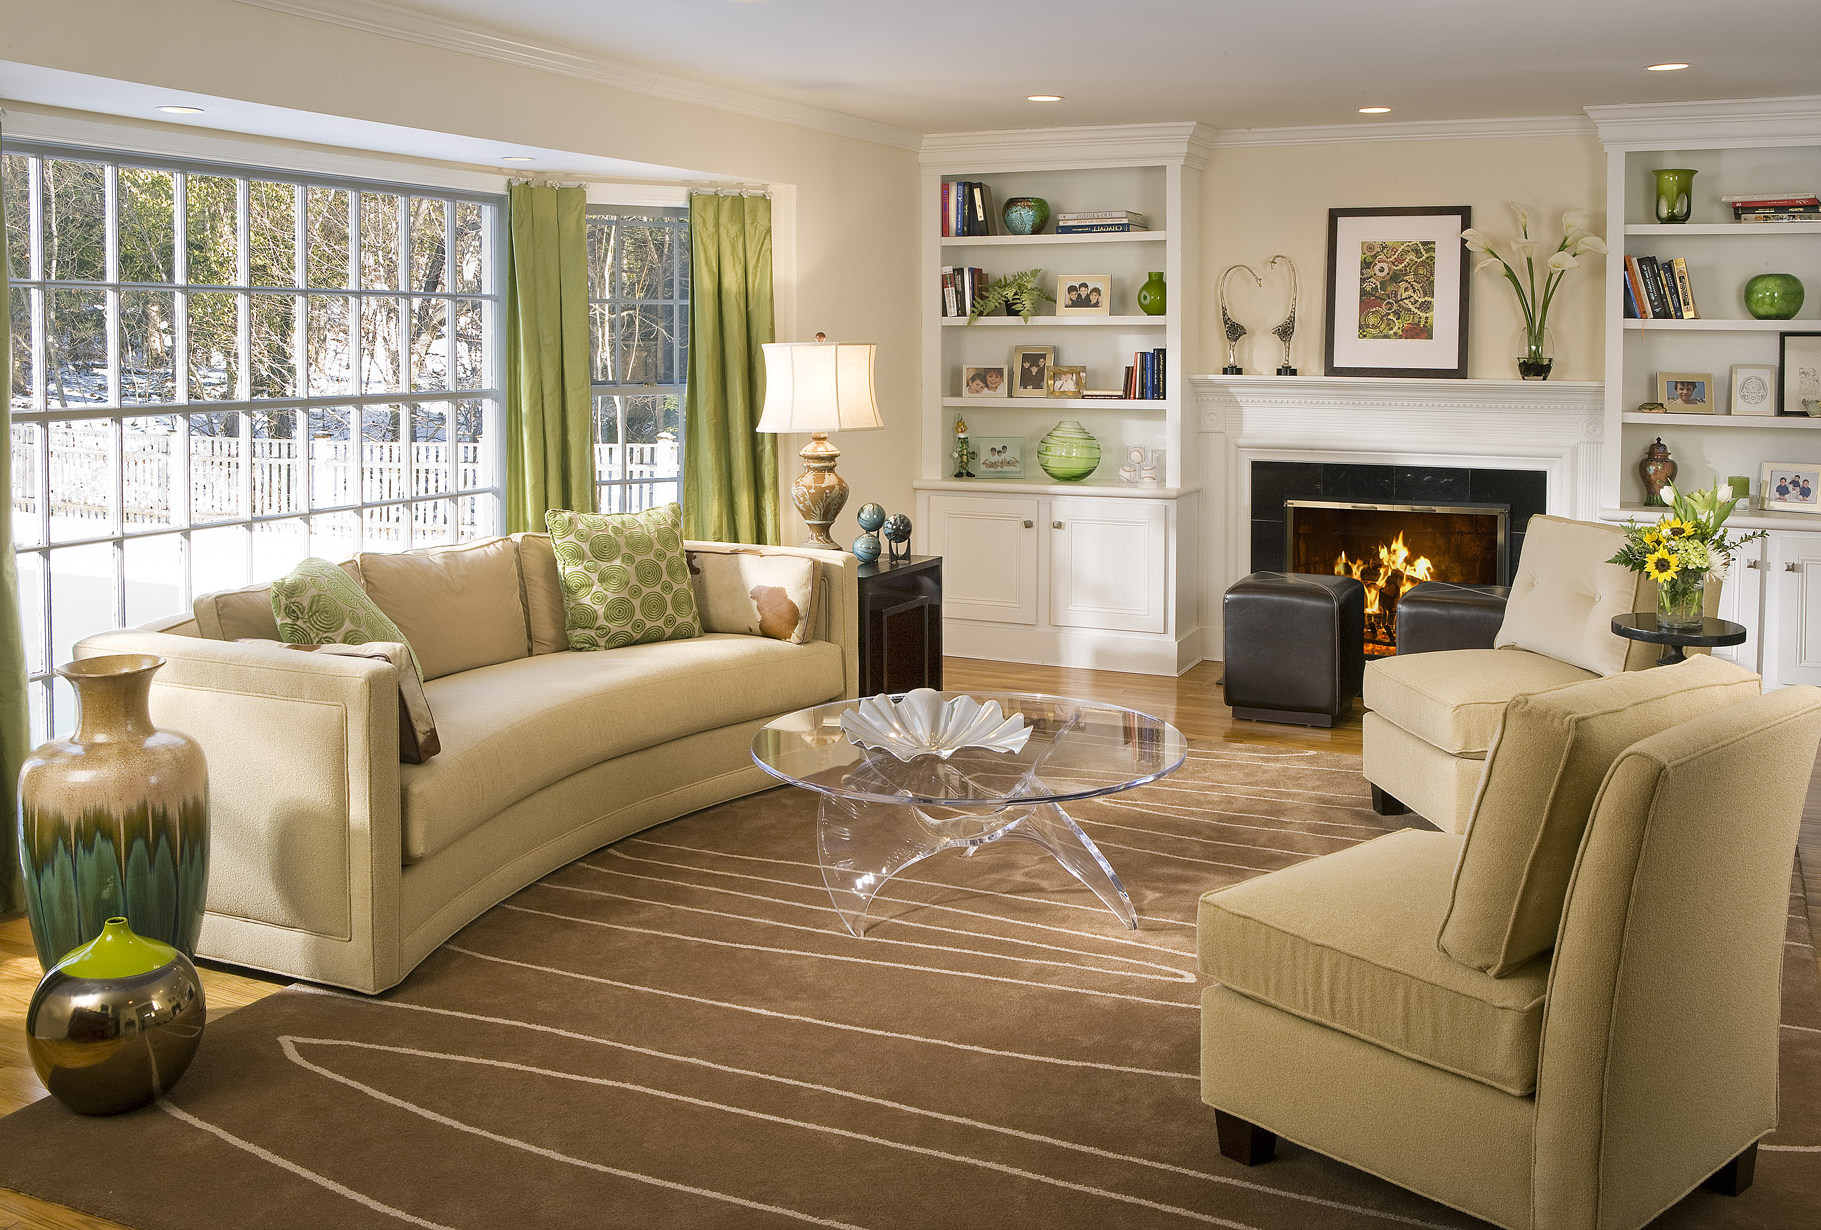 Best Paint Color for Living Room Ideas to Decorate Living ... on Colourful Living Room  id=86929